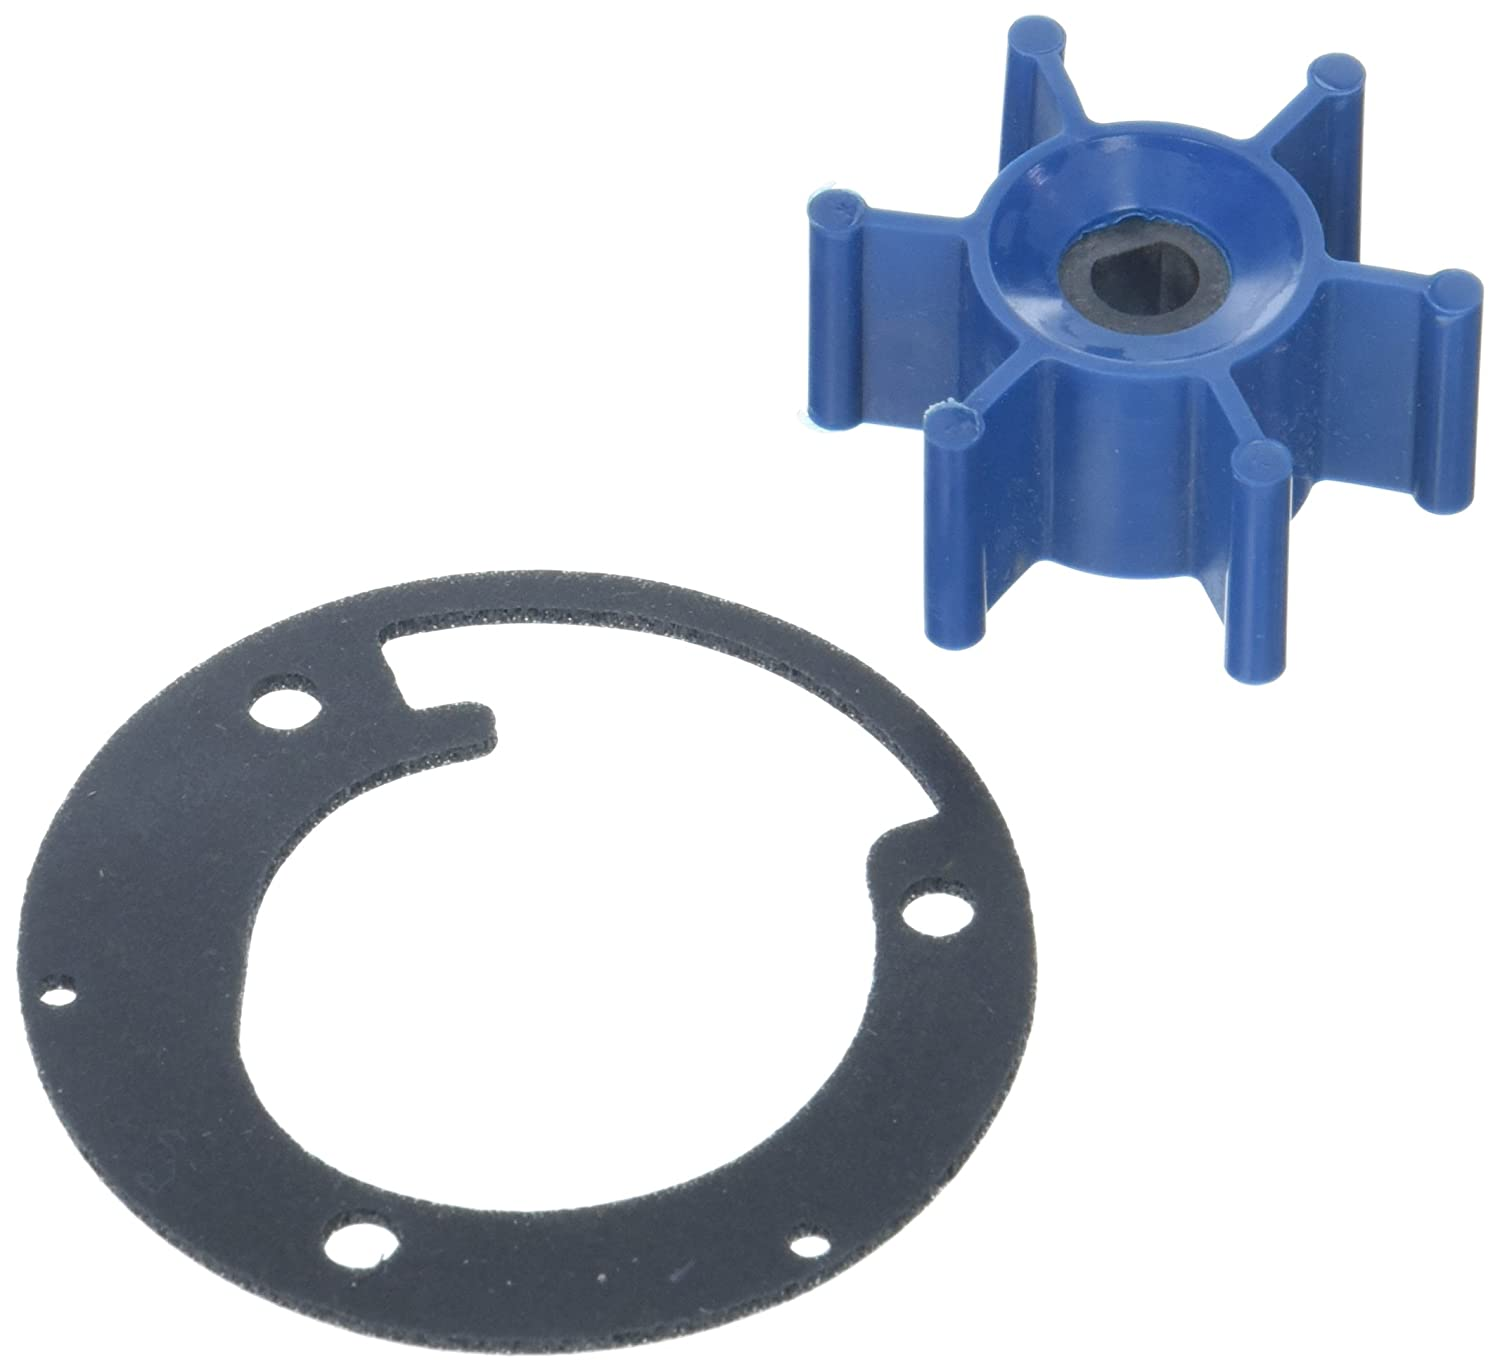 Thetford 70475 Impeller with Gasket